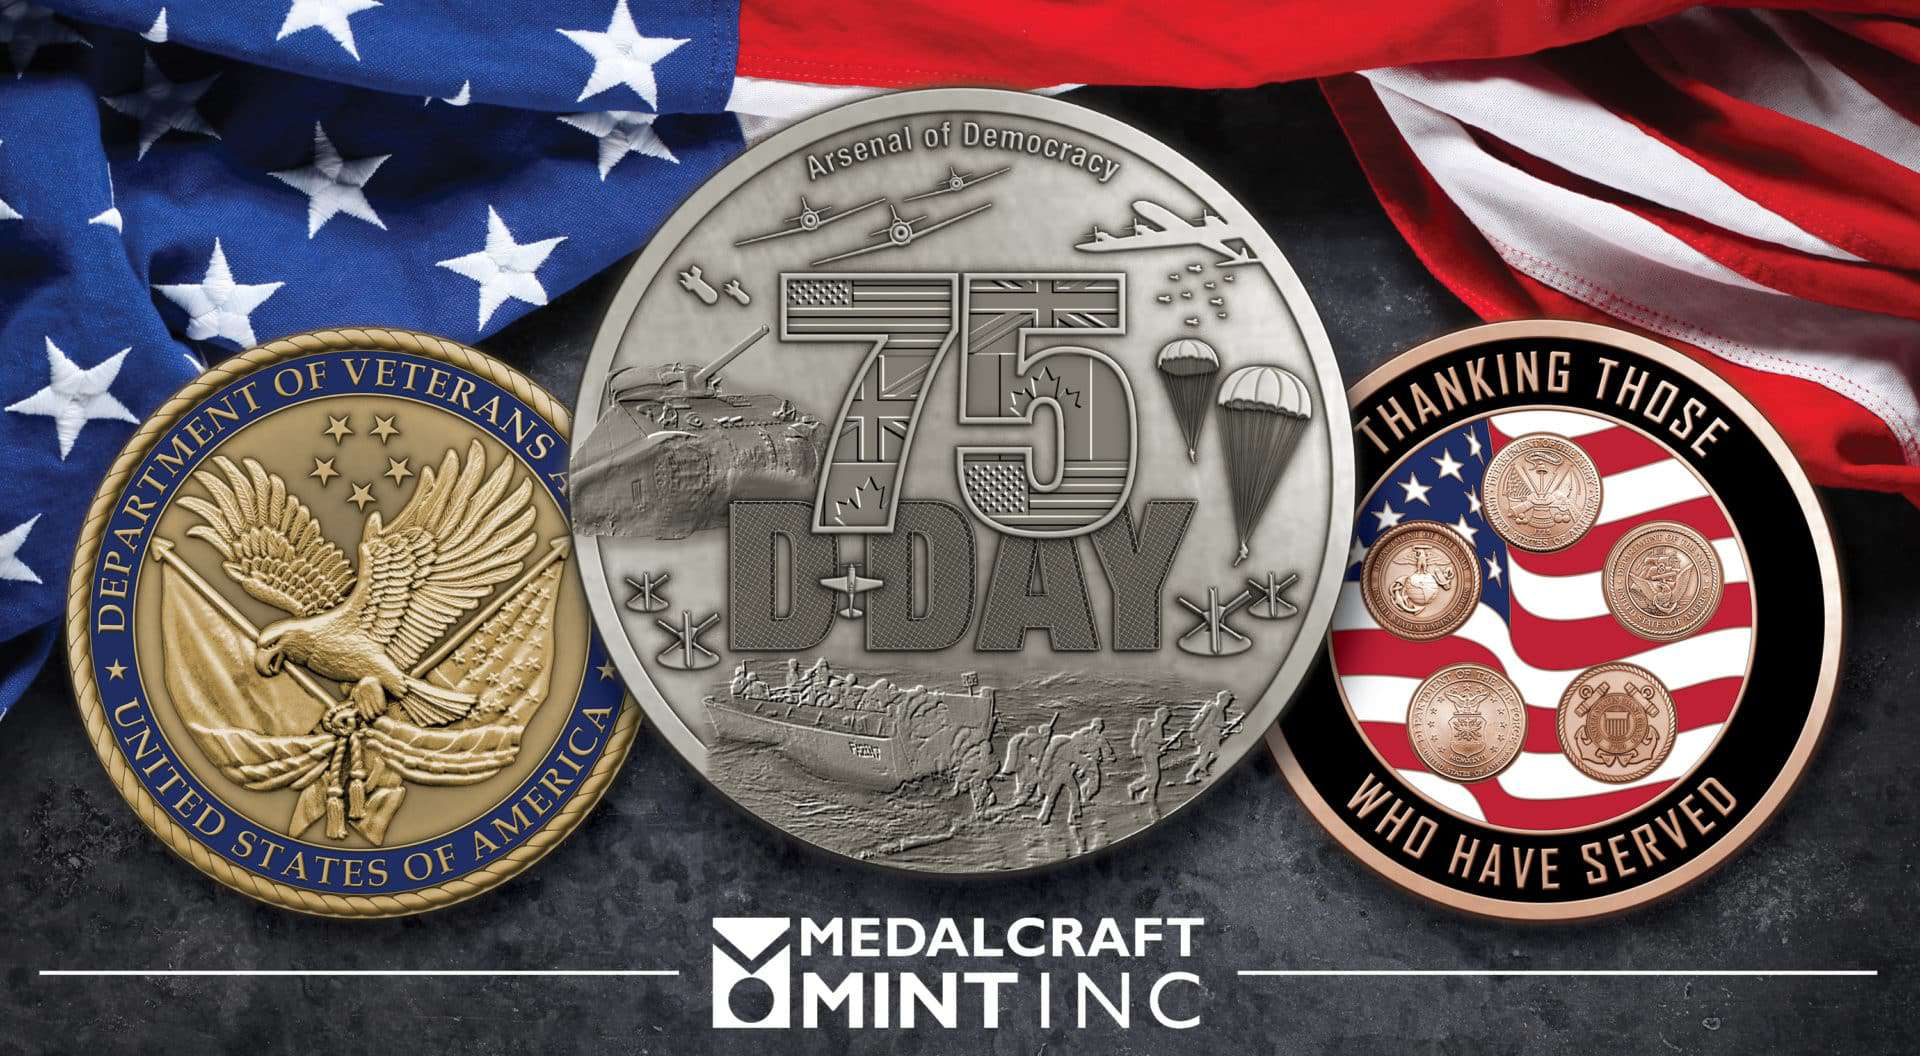 Veteran challenge coins provide tangible connections